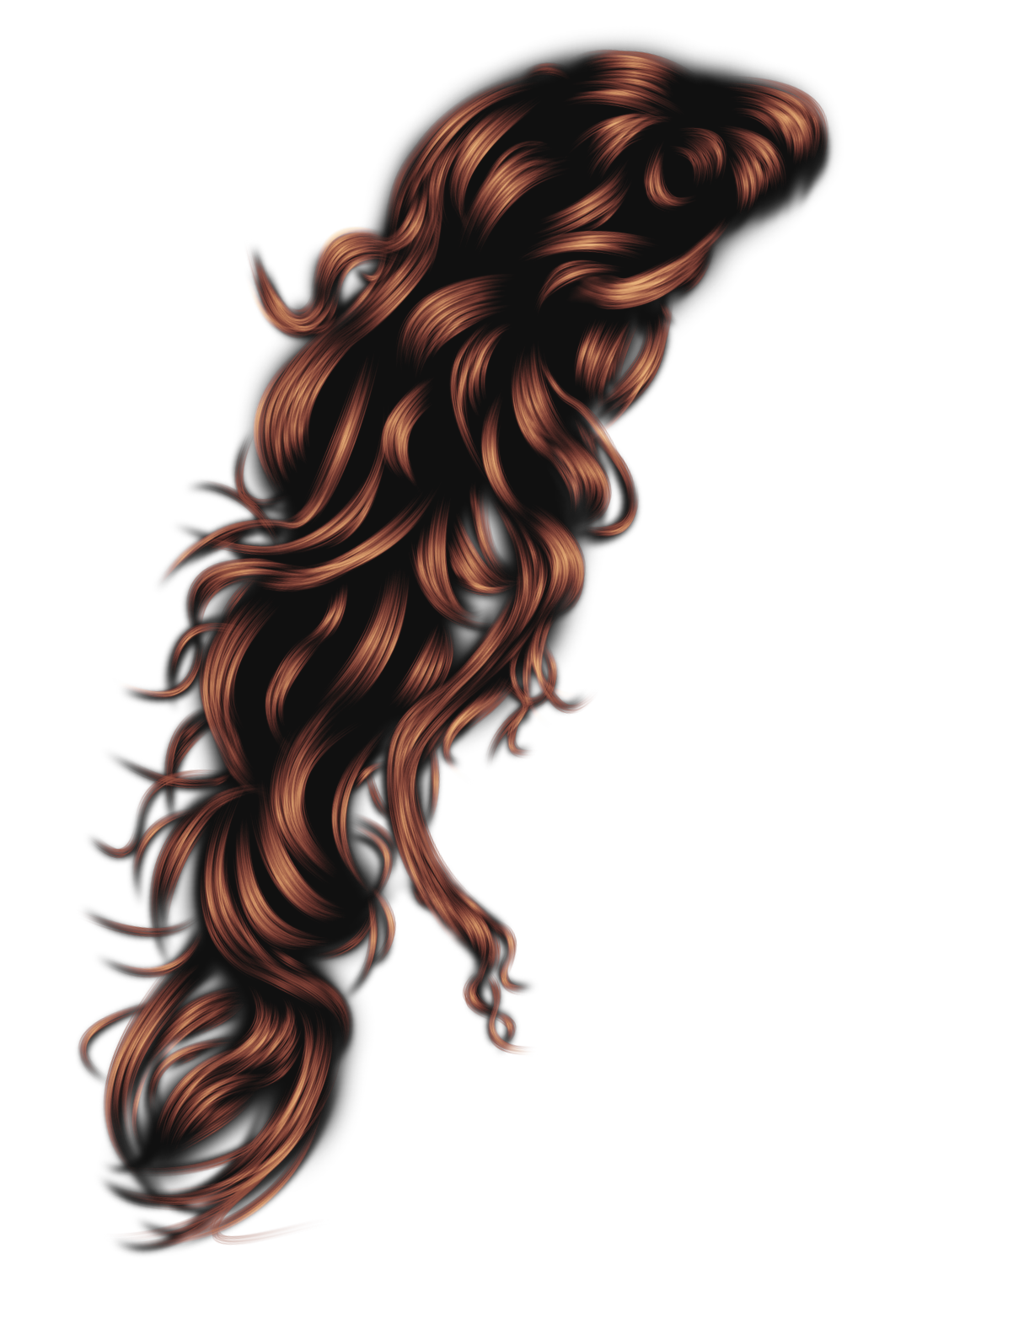 Fantasy Hair 22 by hellonlegs on DeviantArt.